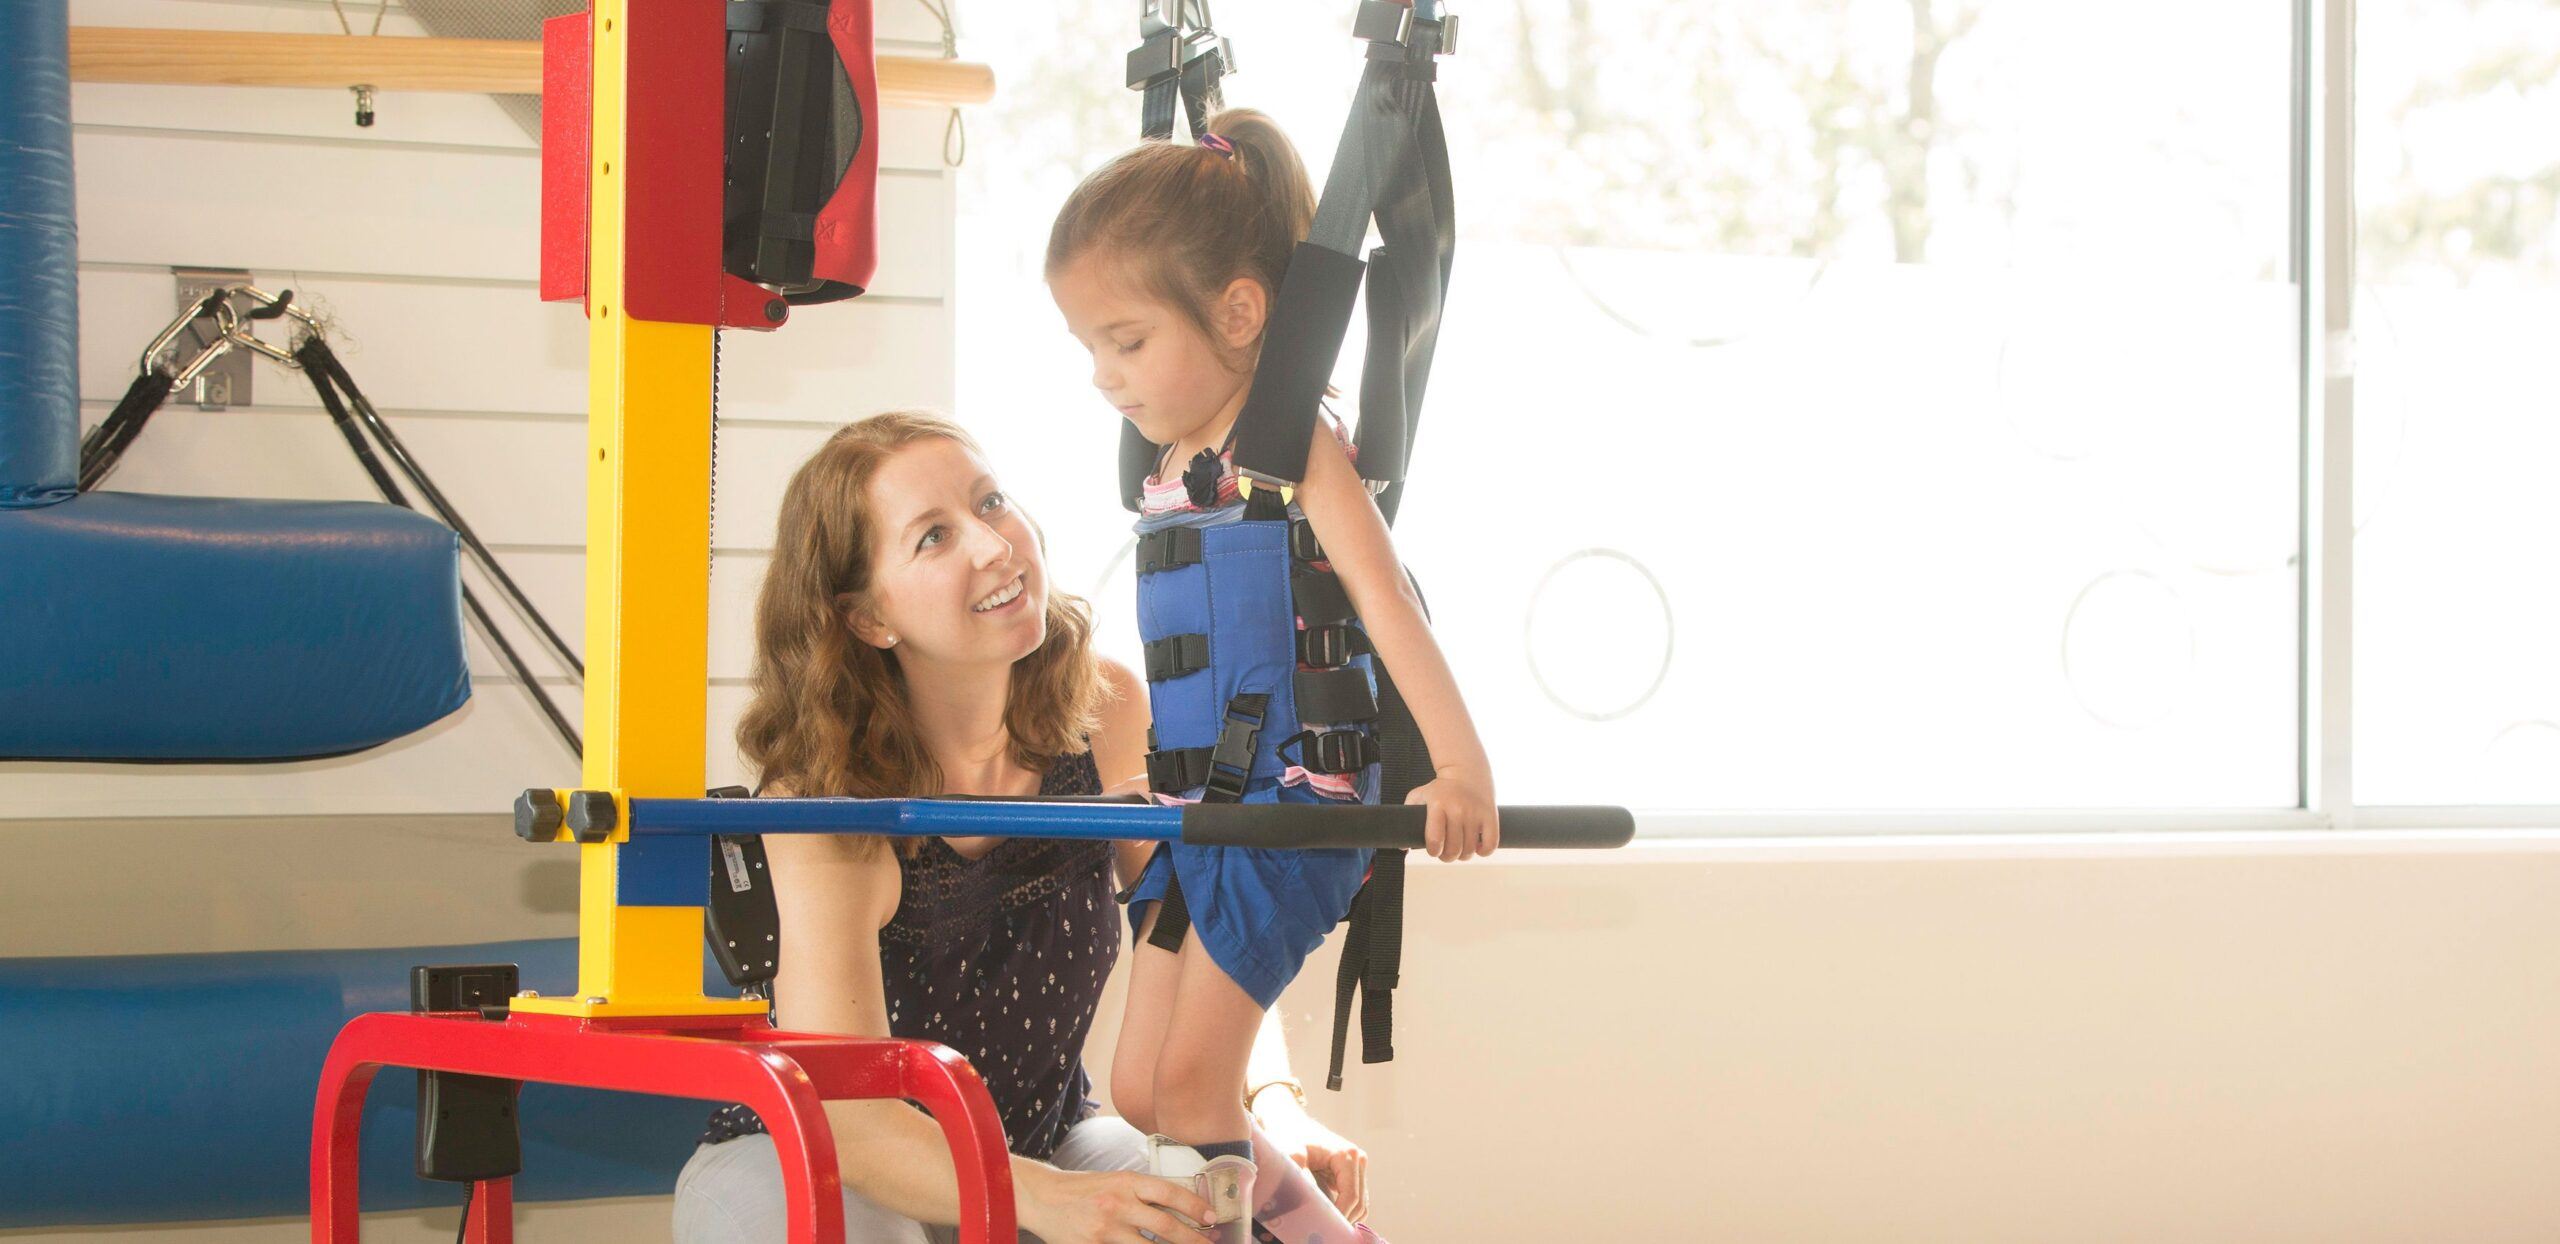 Child with physical developmental disability